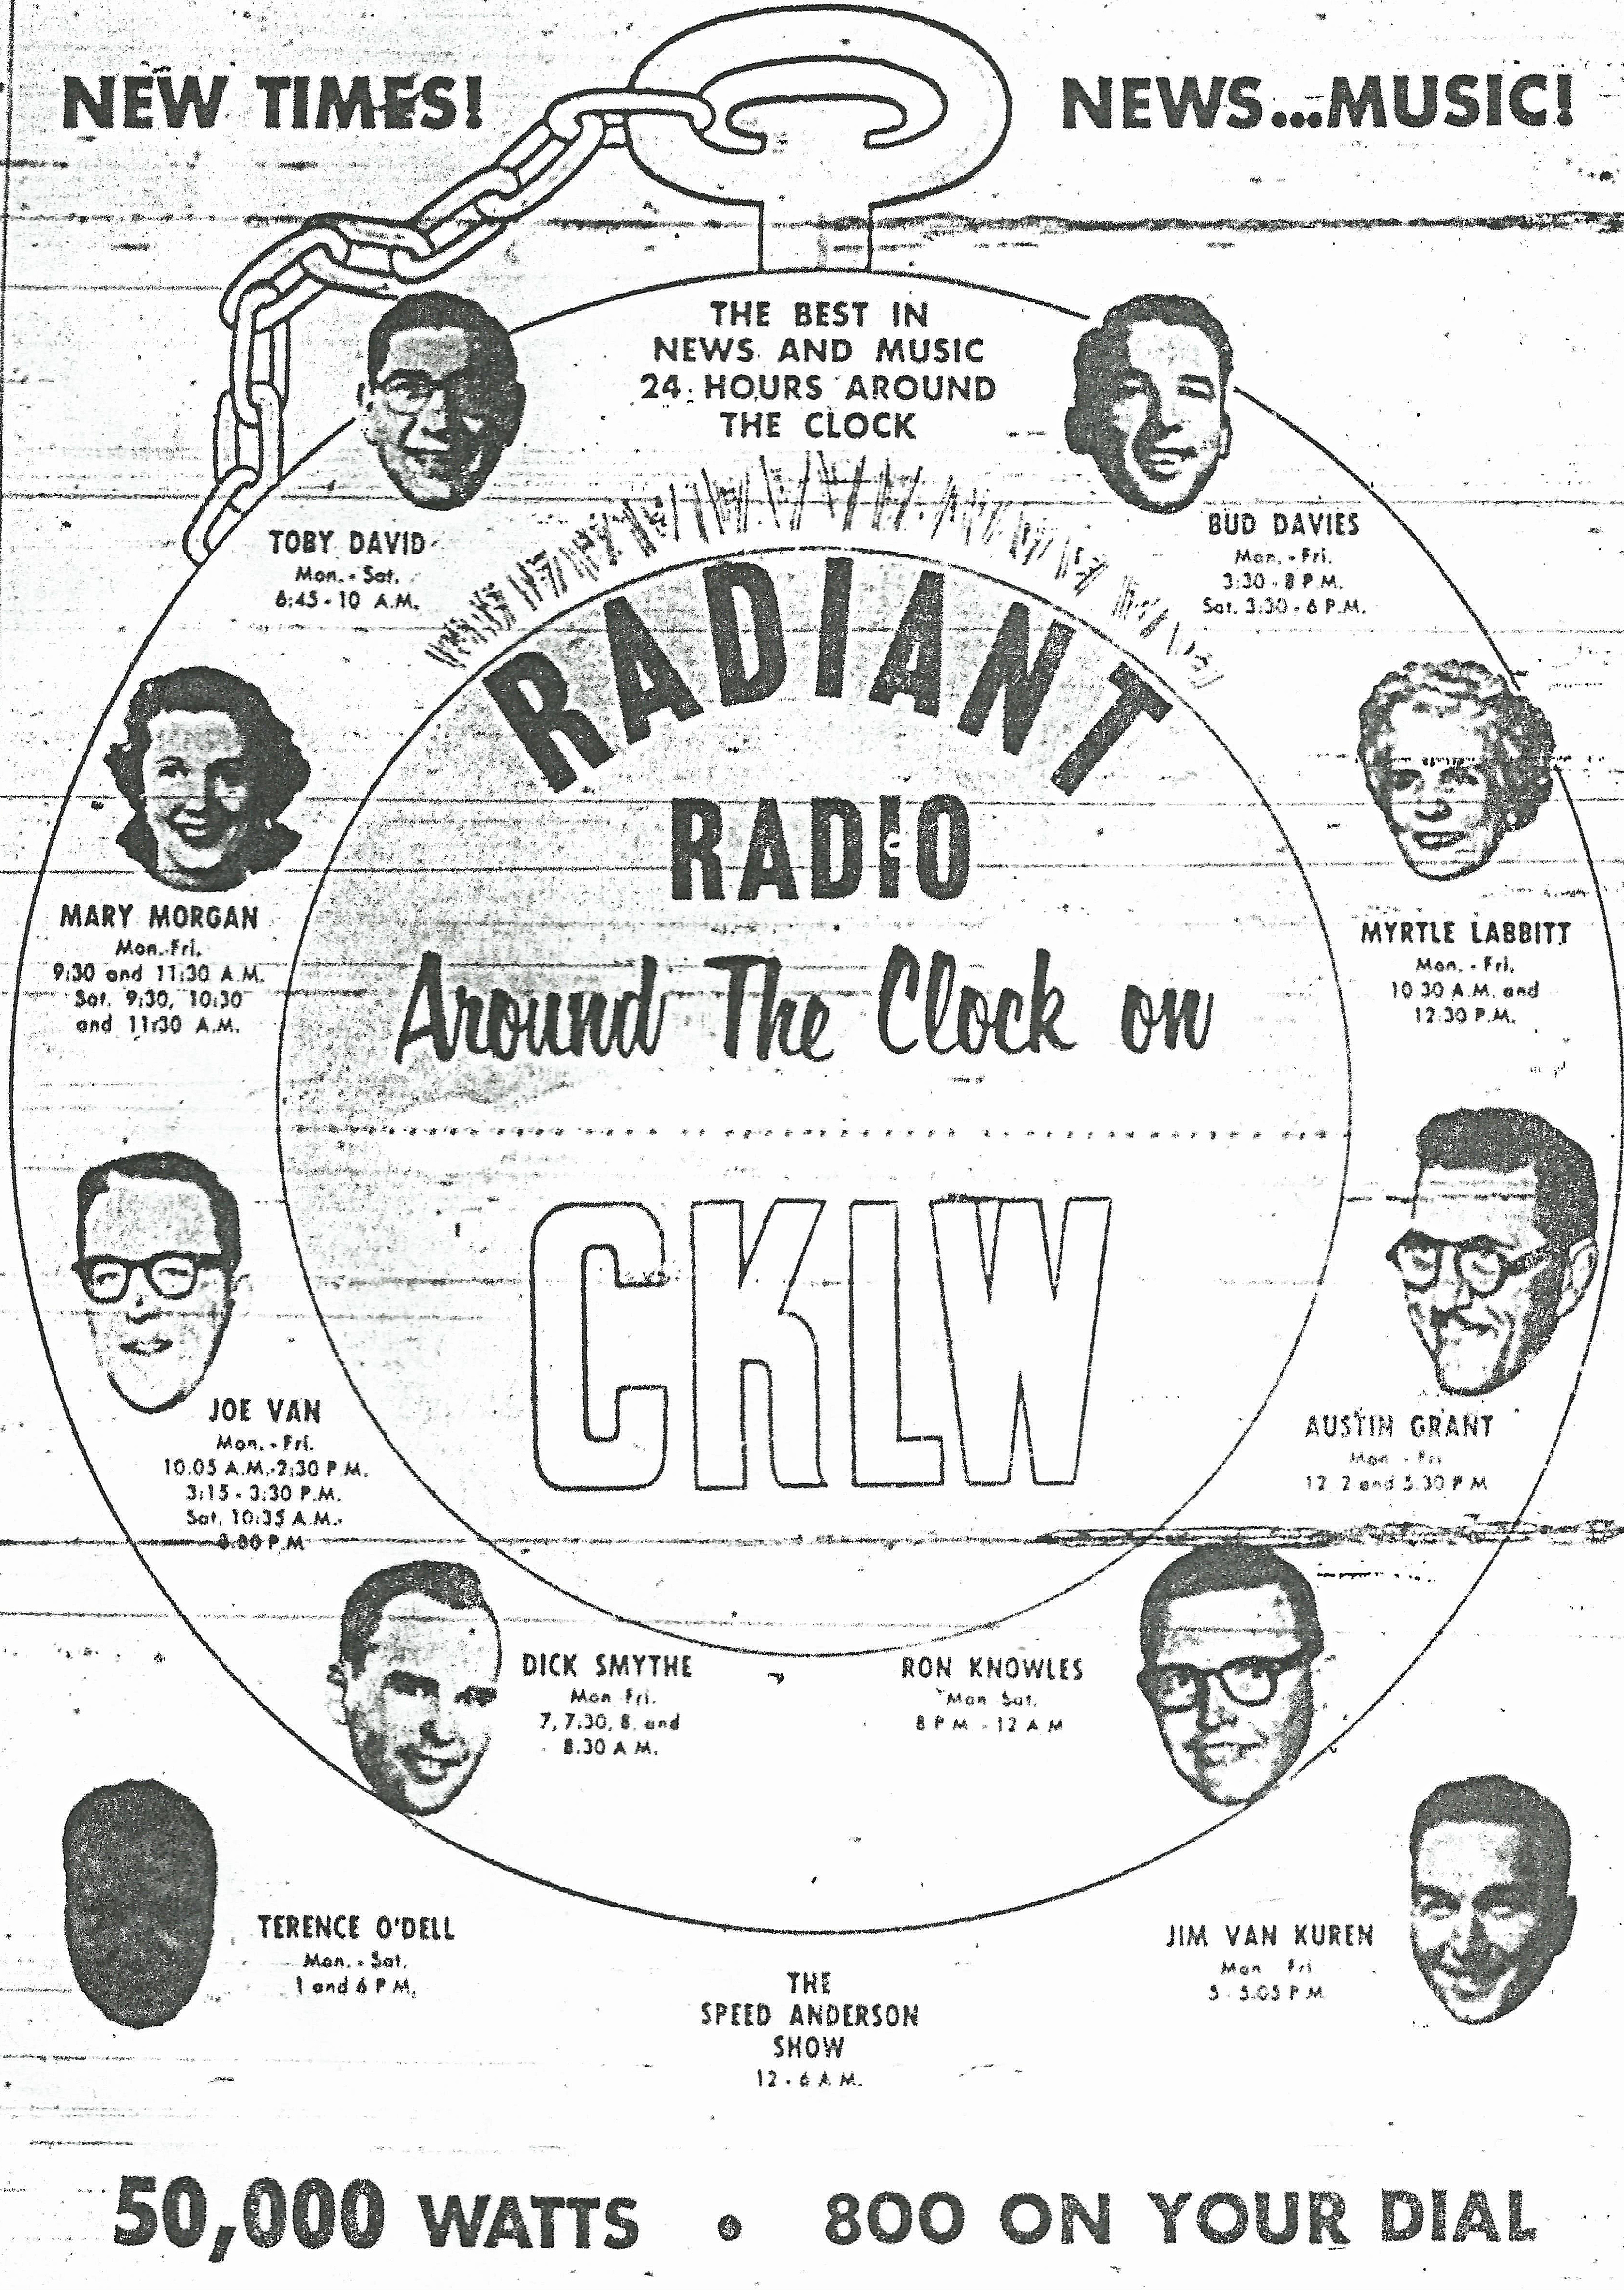 "CKLW 800, featuring Bud Davies, Myrtle Labbitt, Austin Grant, Ron Knowles Dick Smythe, Joe Van, Mary Morgan, Toby David. Also, Terrance O' Dell, ""Speed"" Anderson and Jim Van Kuren. From the entertainment section of The Detroit News, April 7, 1959."